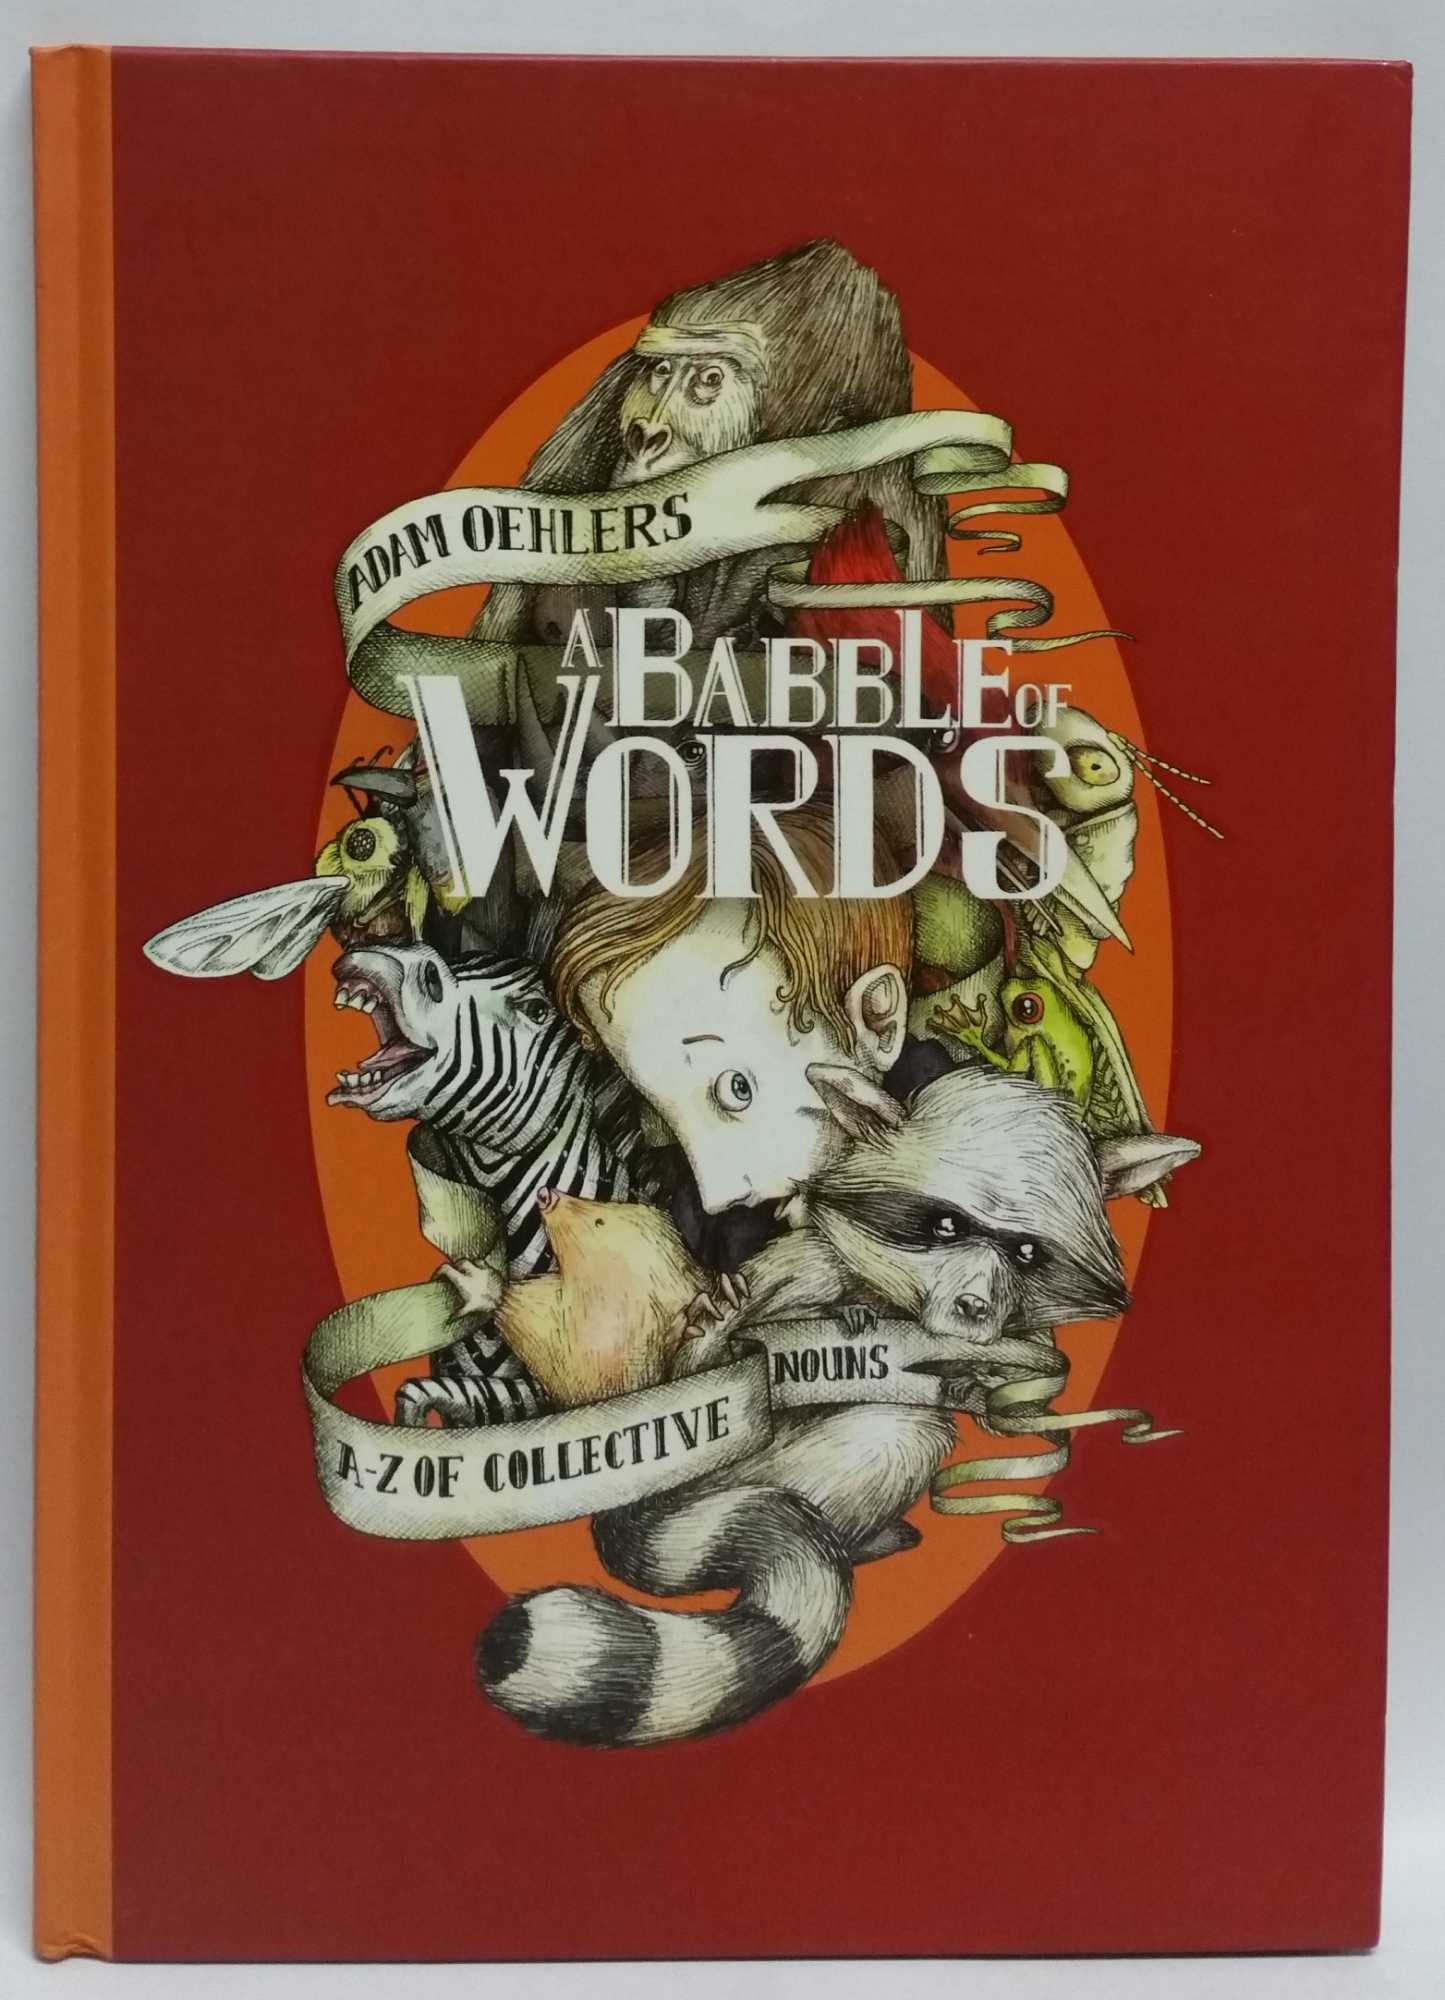 A Babble of Words: A-Z of Collective Nouns, Adam Oehlers